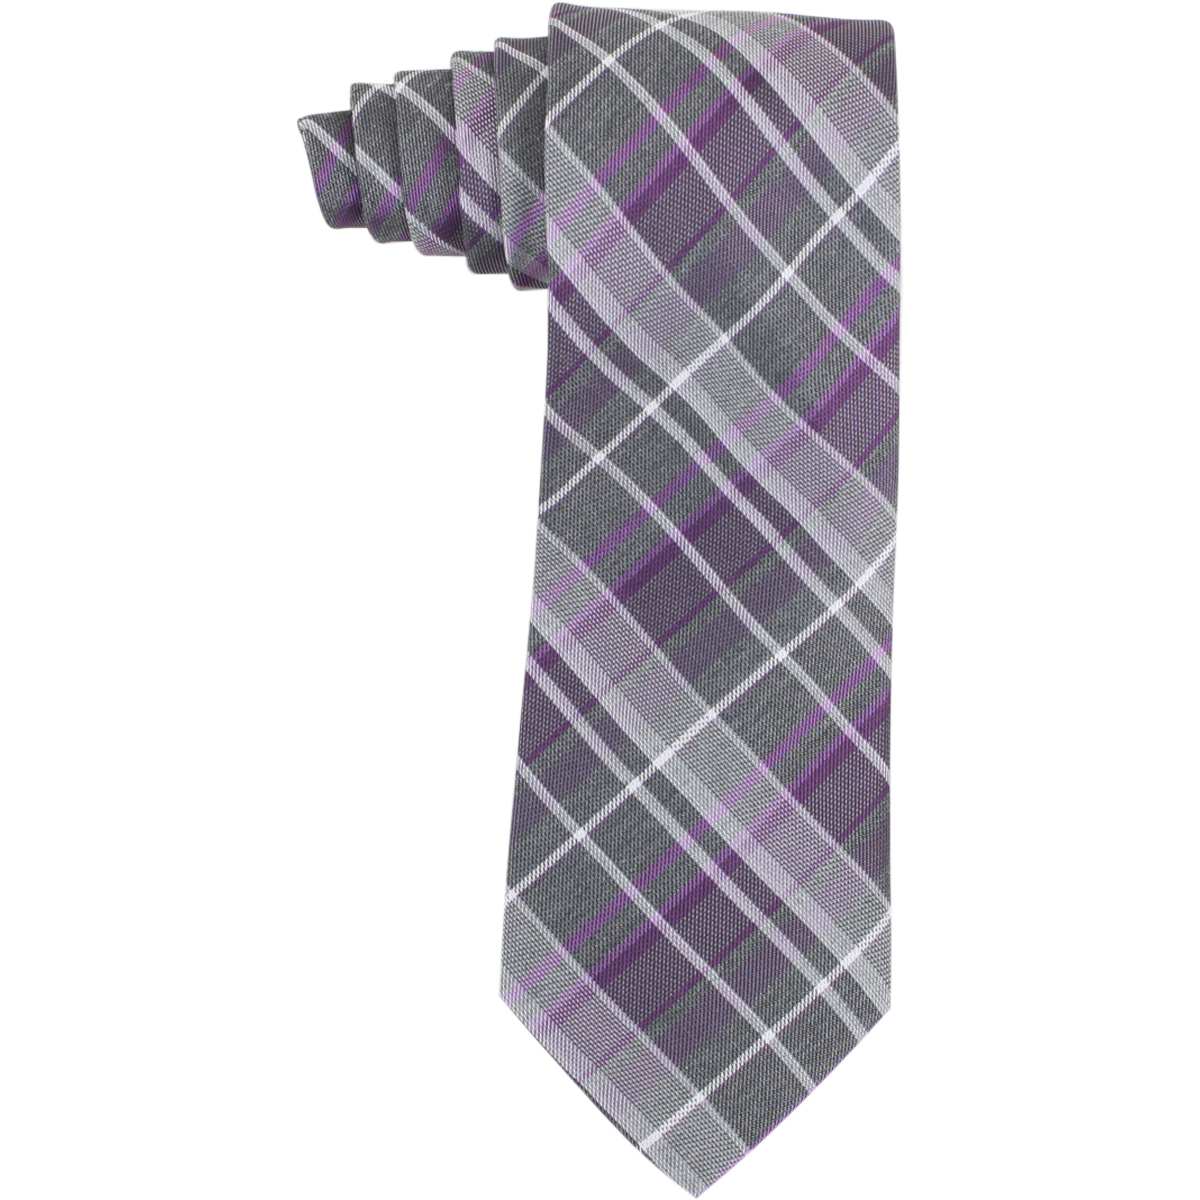 Image of Calvin Klein Men's Graphite Schoolboy Plaid Tie - Fuchsia - 3 Inch